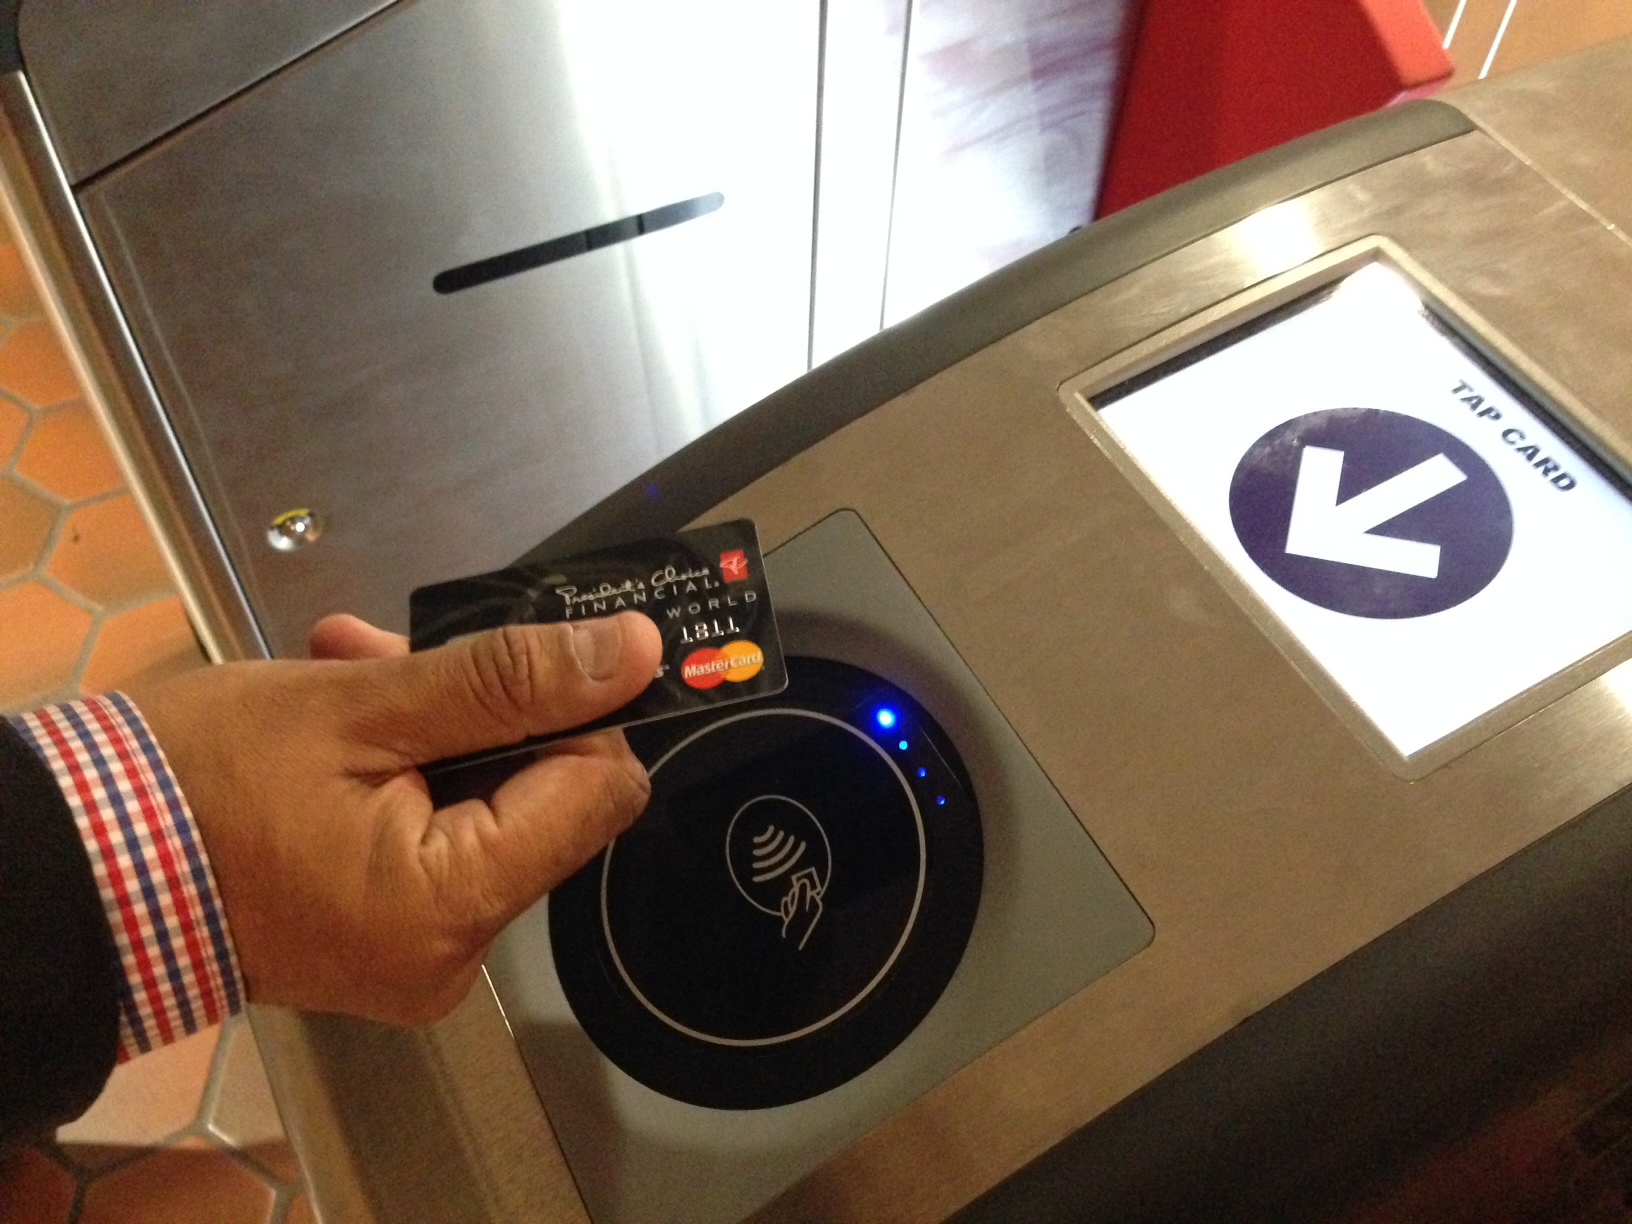 Google Wallet, Apple Pay on Metro? Maybe not